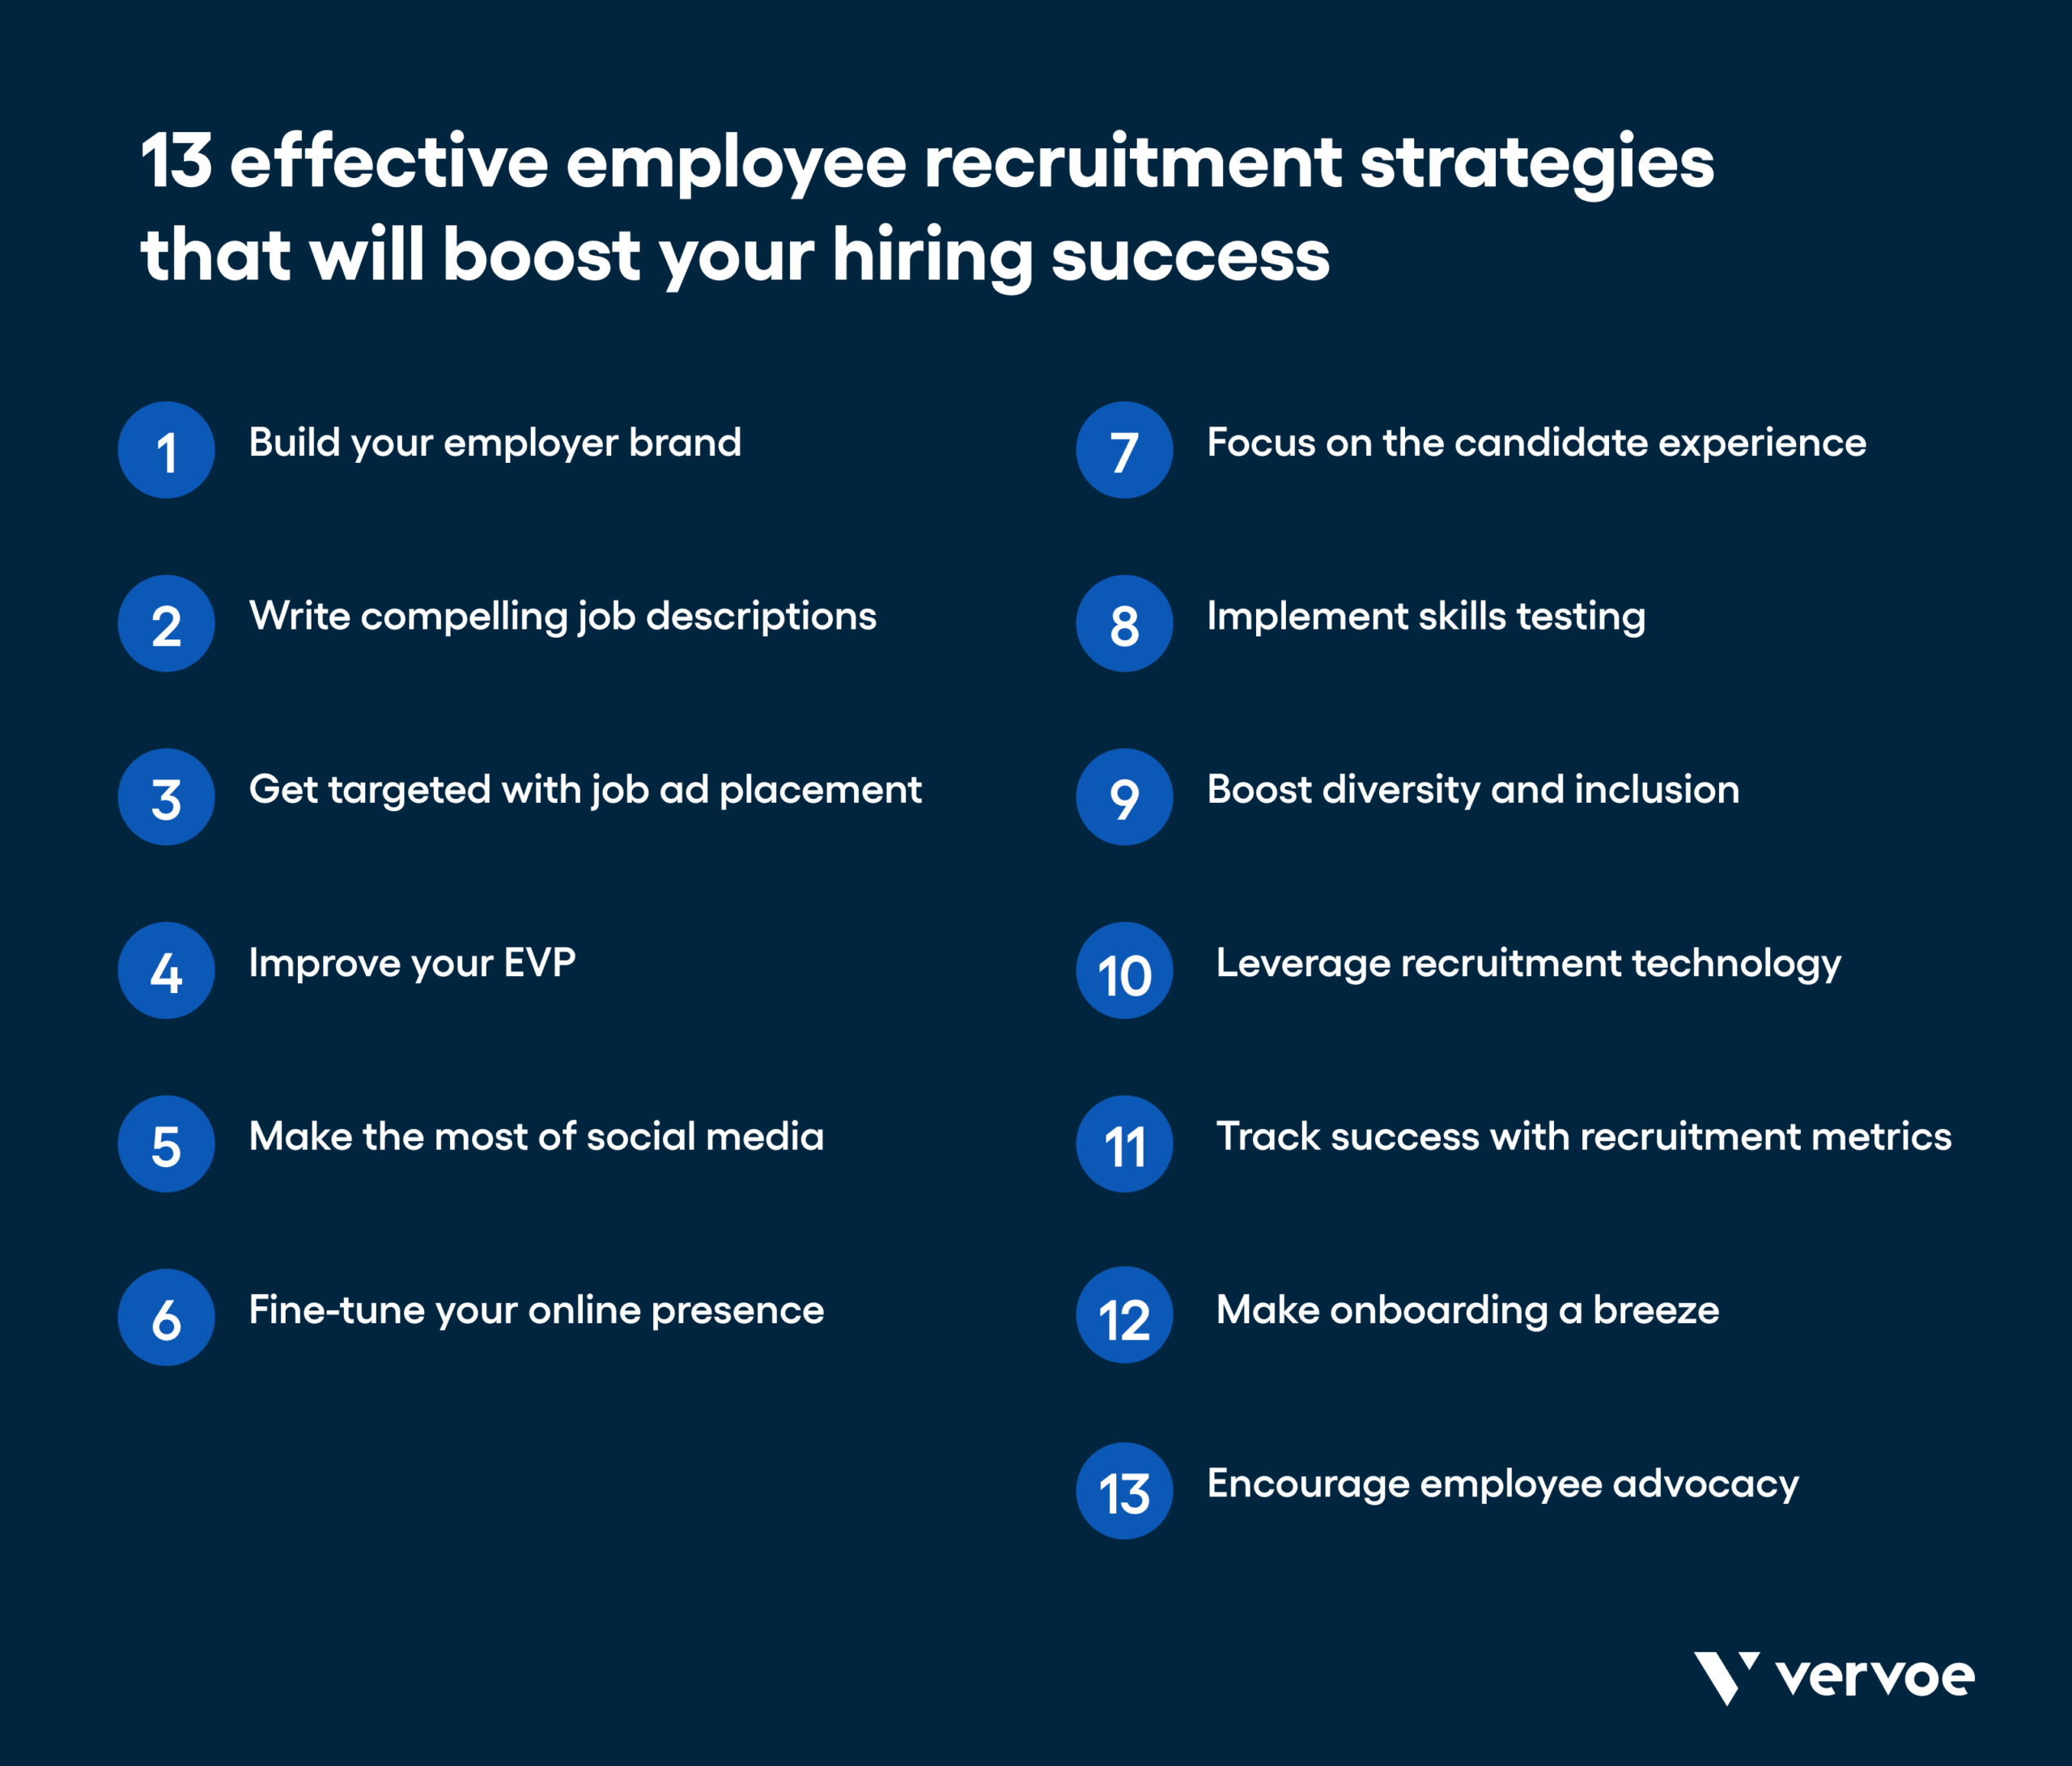 Infographic showing 13 effective employee recruitment strategies to boost hiring success